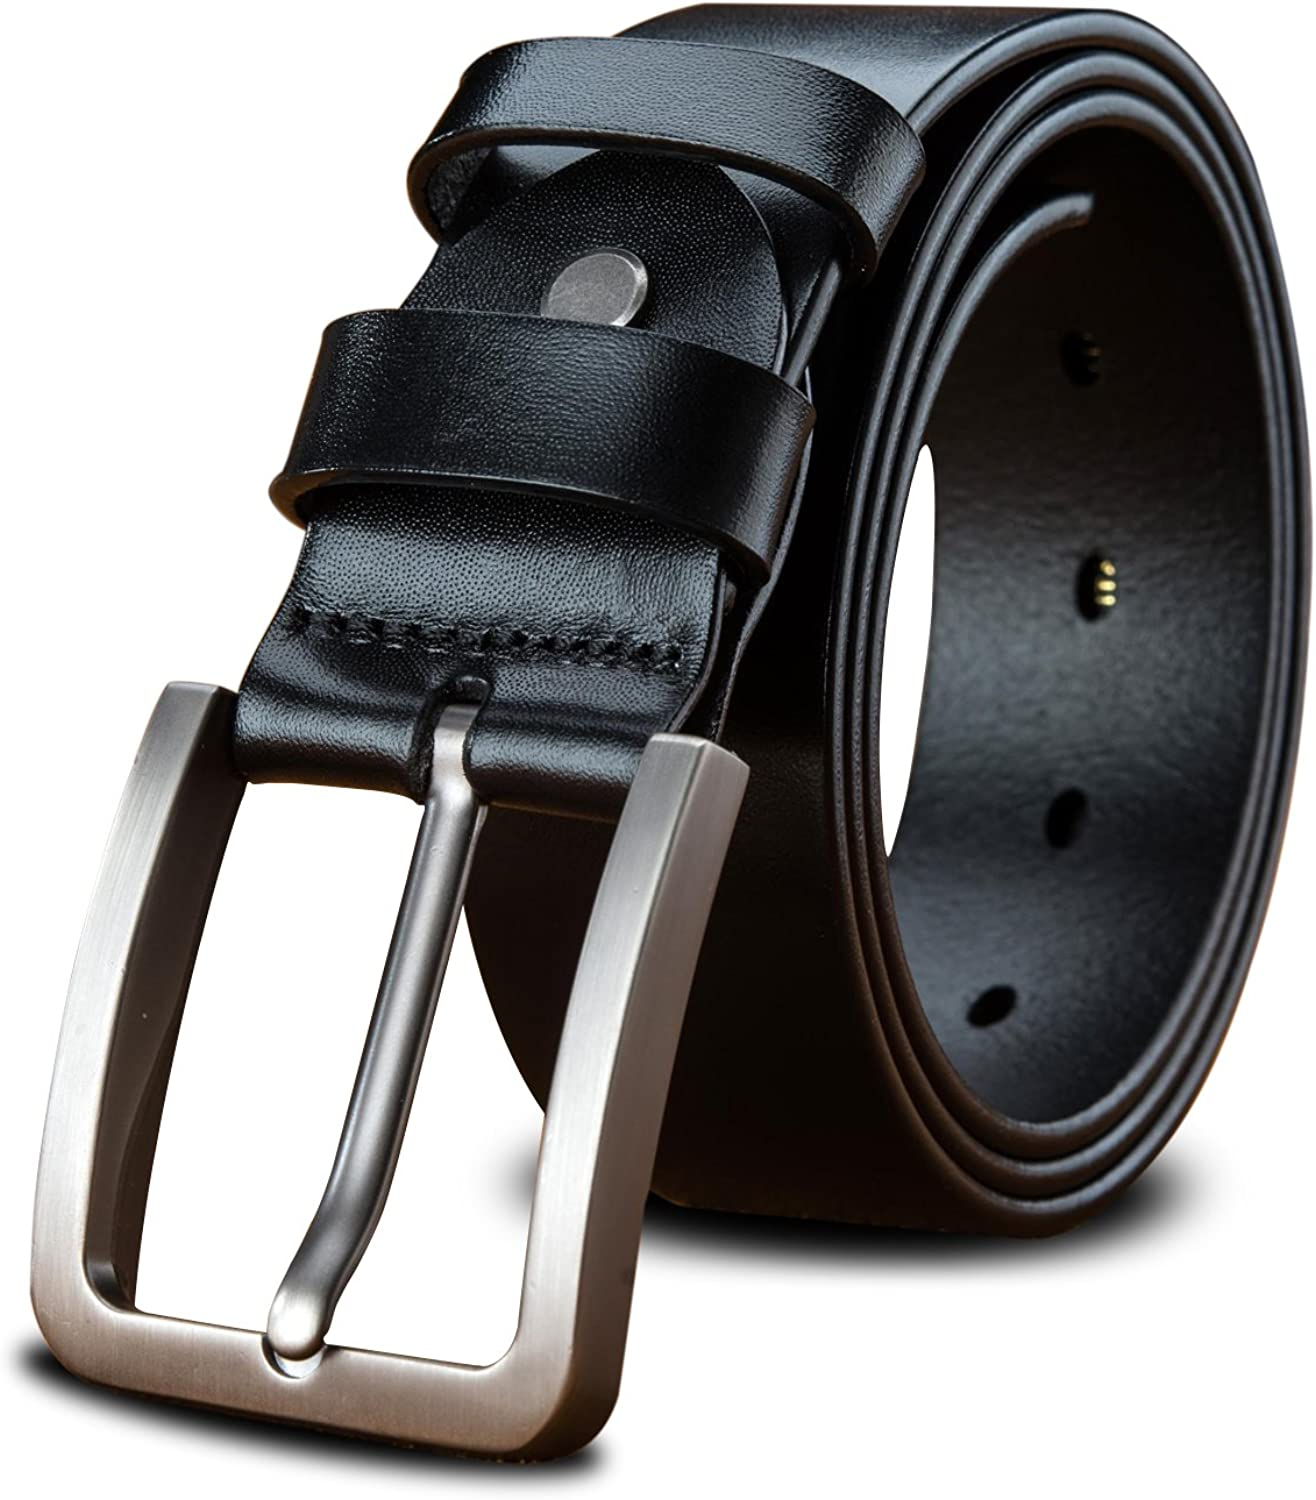 LUCIANO Upscale Genuine Leather Italy Cowhide Black & Brown Belt Men's Dress Belts